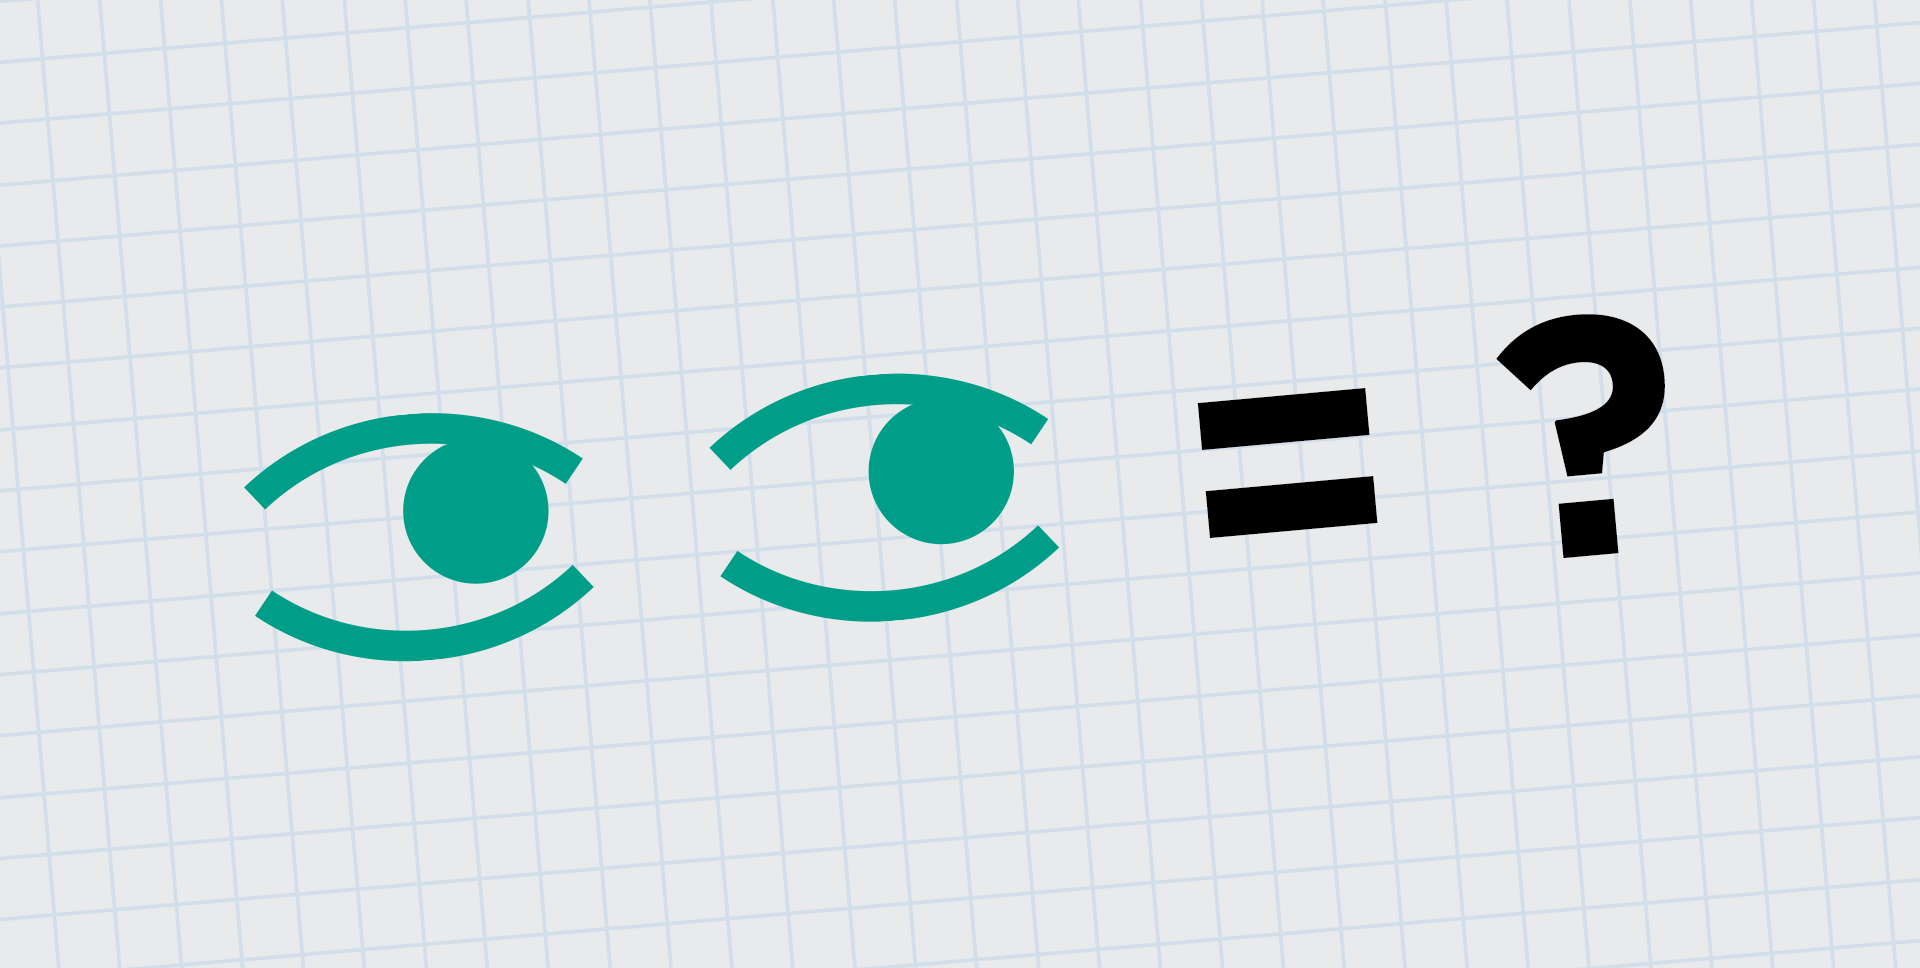 A pair of eye icons next to a question mark